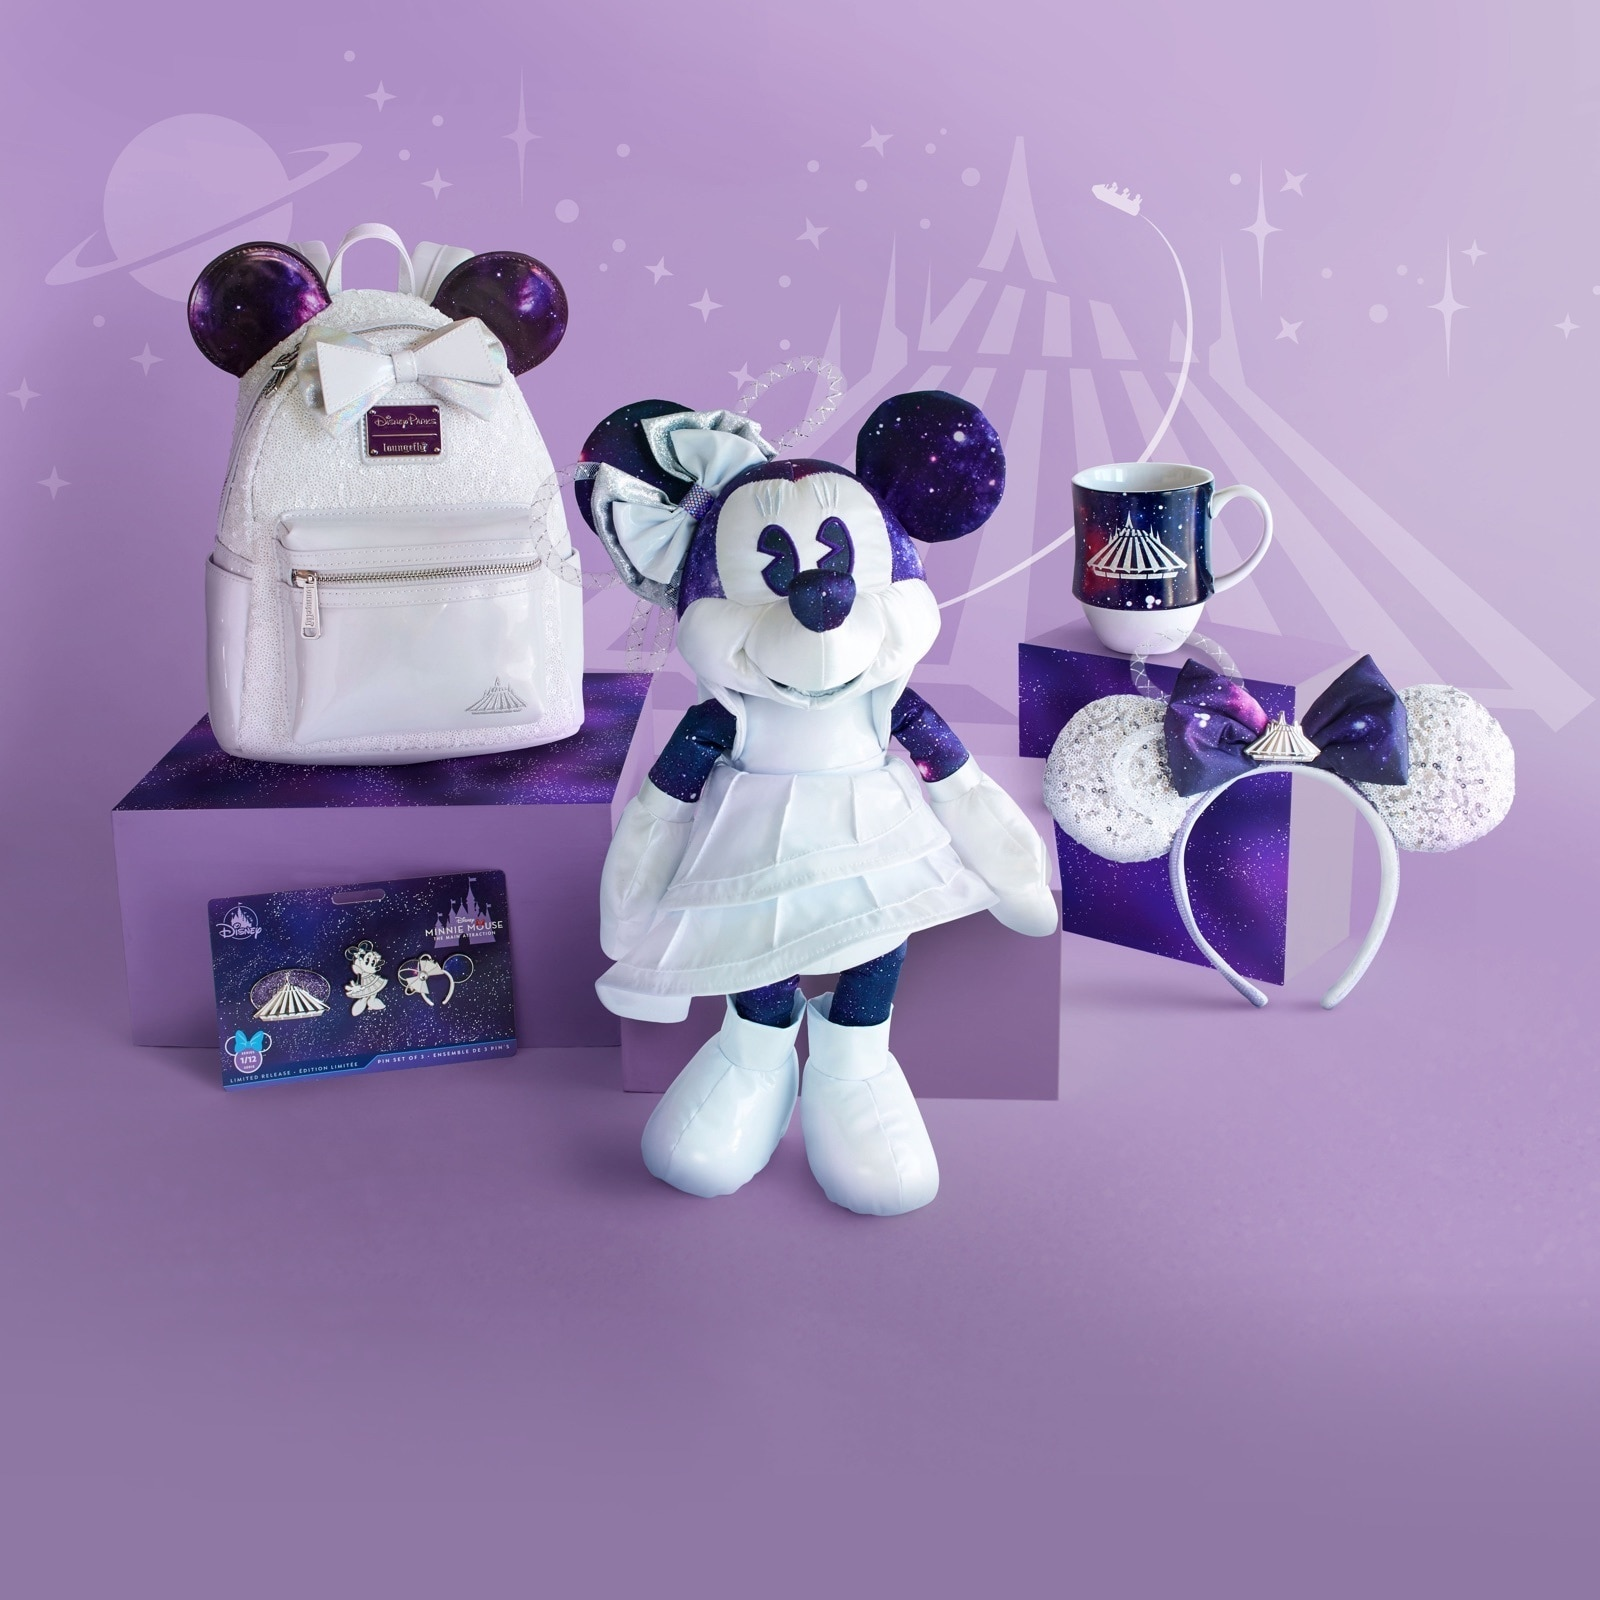 Minnie Mouse The Main Attraction januari Collectie